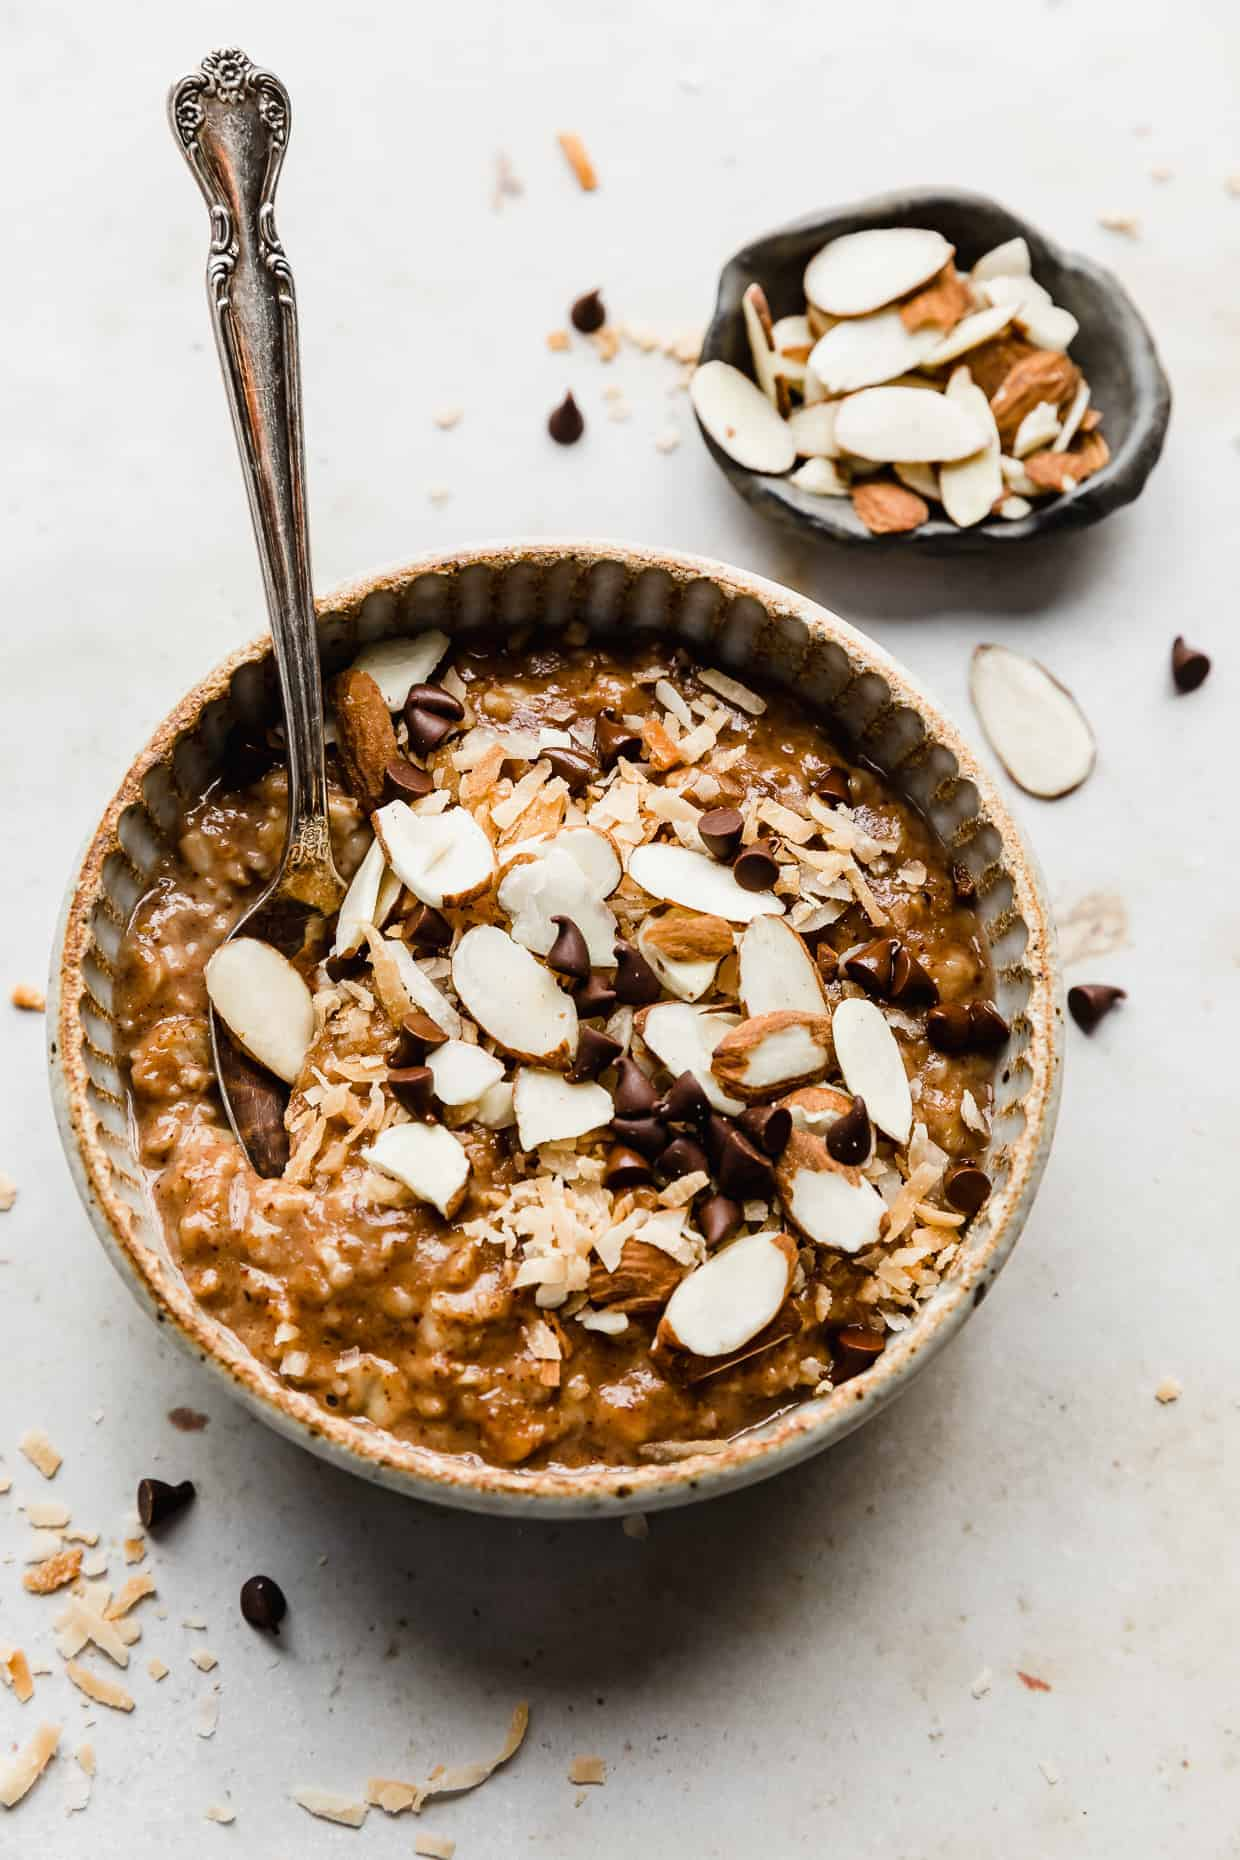 A bowl with almond joy oatmeal topped with coconut, almonds, and chocolate chips.